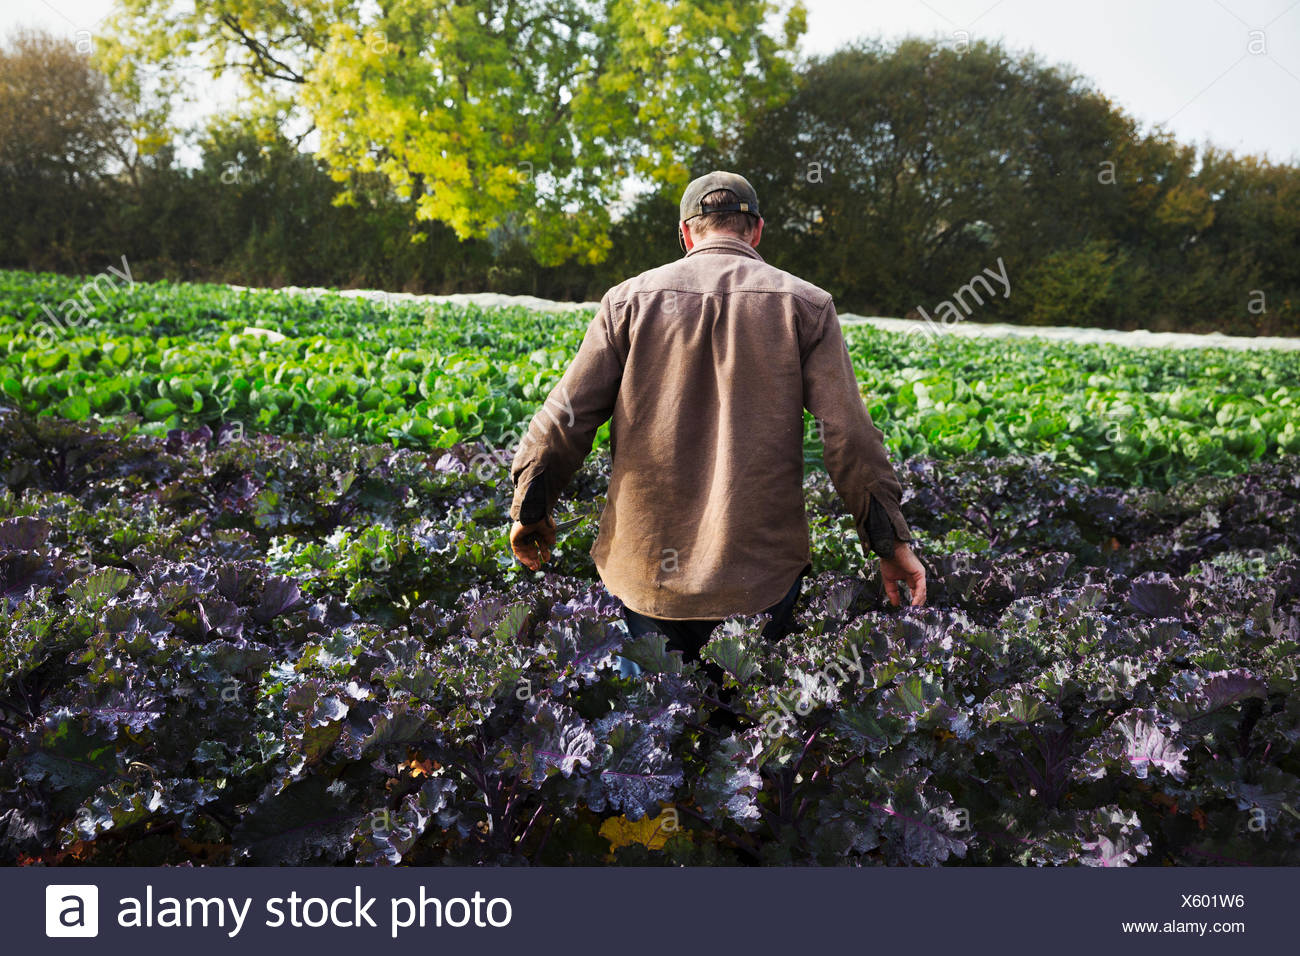 A man walking through a field full of growing crops on a small farm. Stock Photo